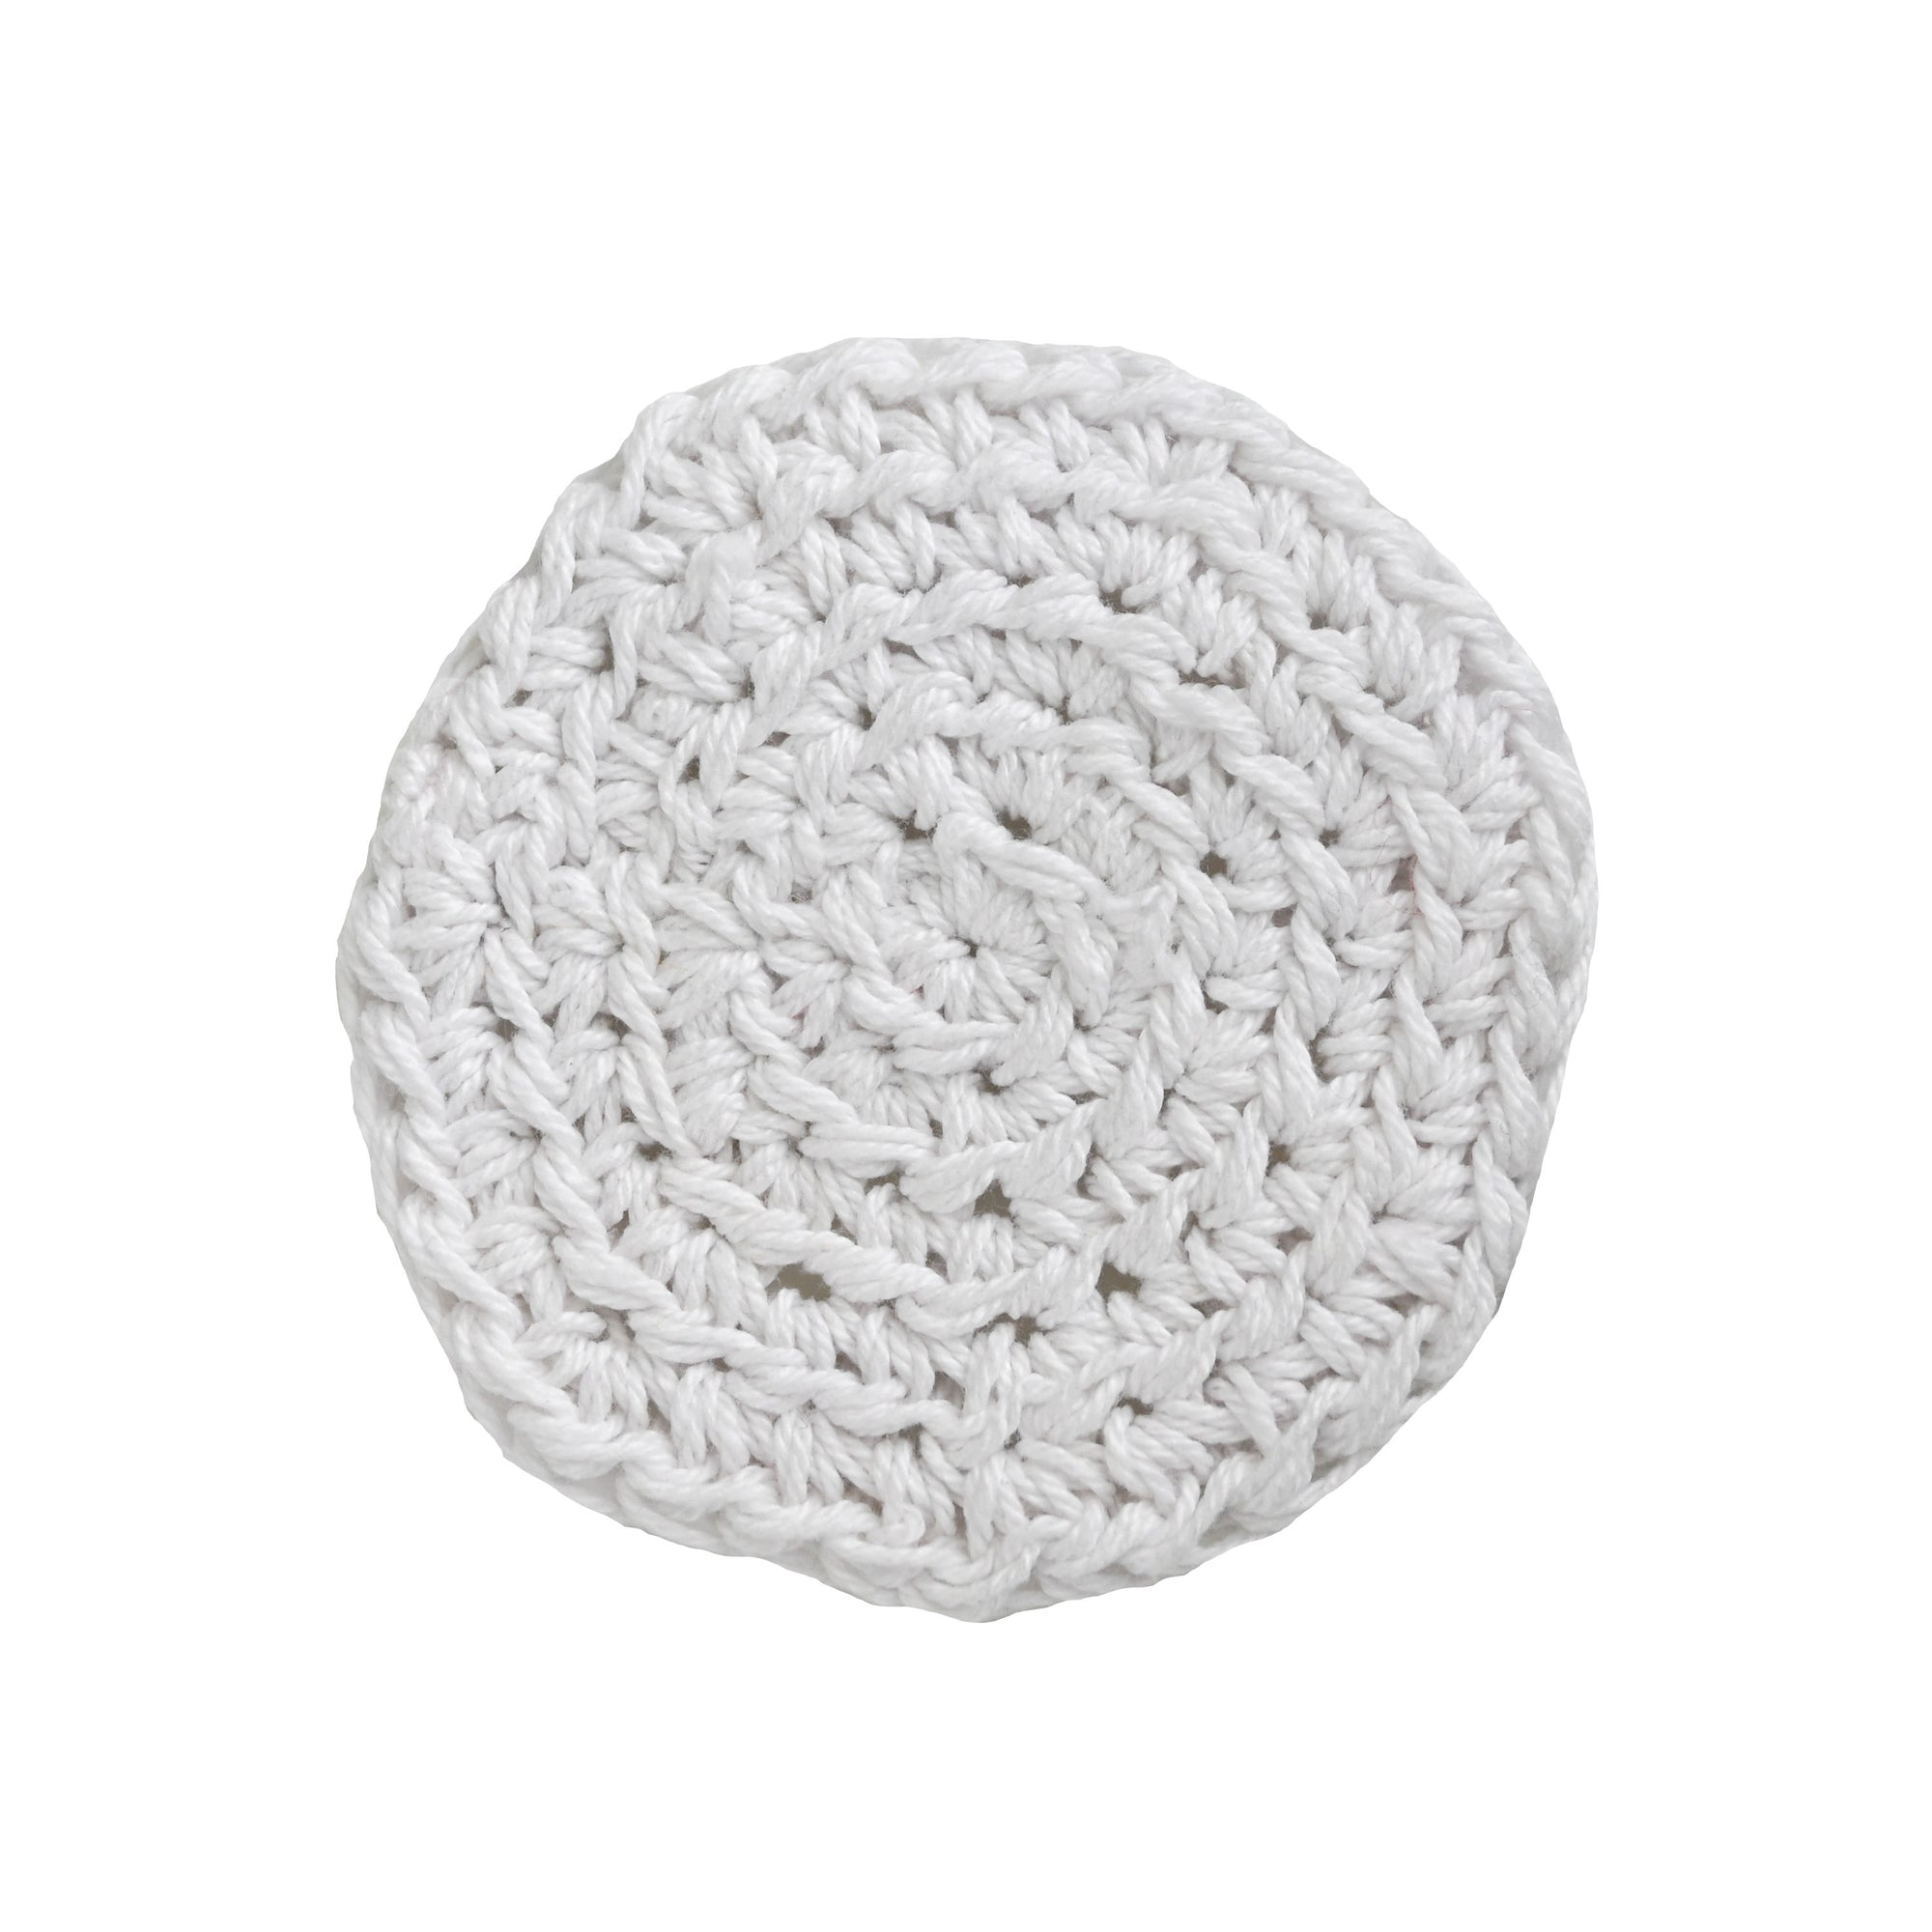 White Reusable Makeup Pads - Carys The World Bamboo Bottle Brush